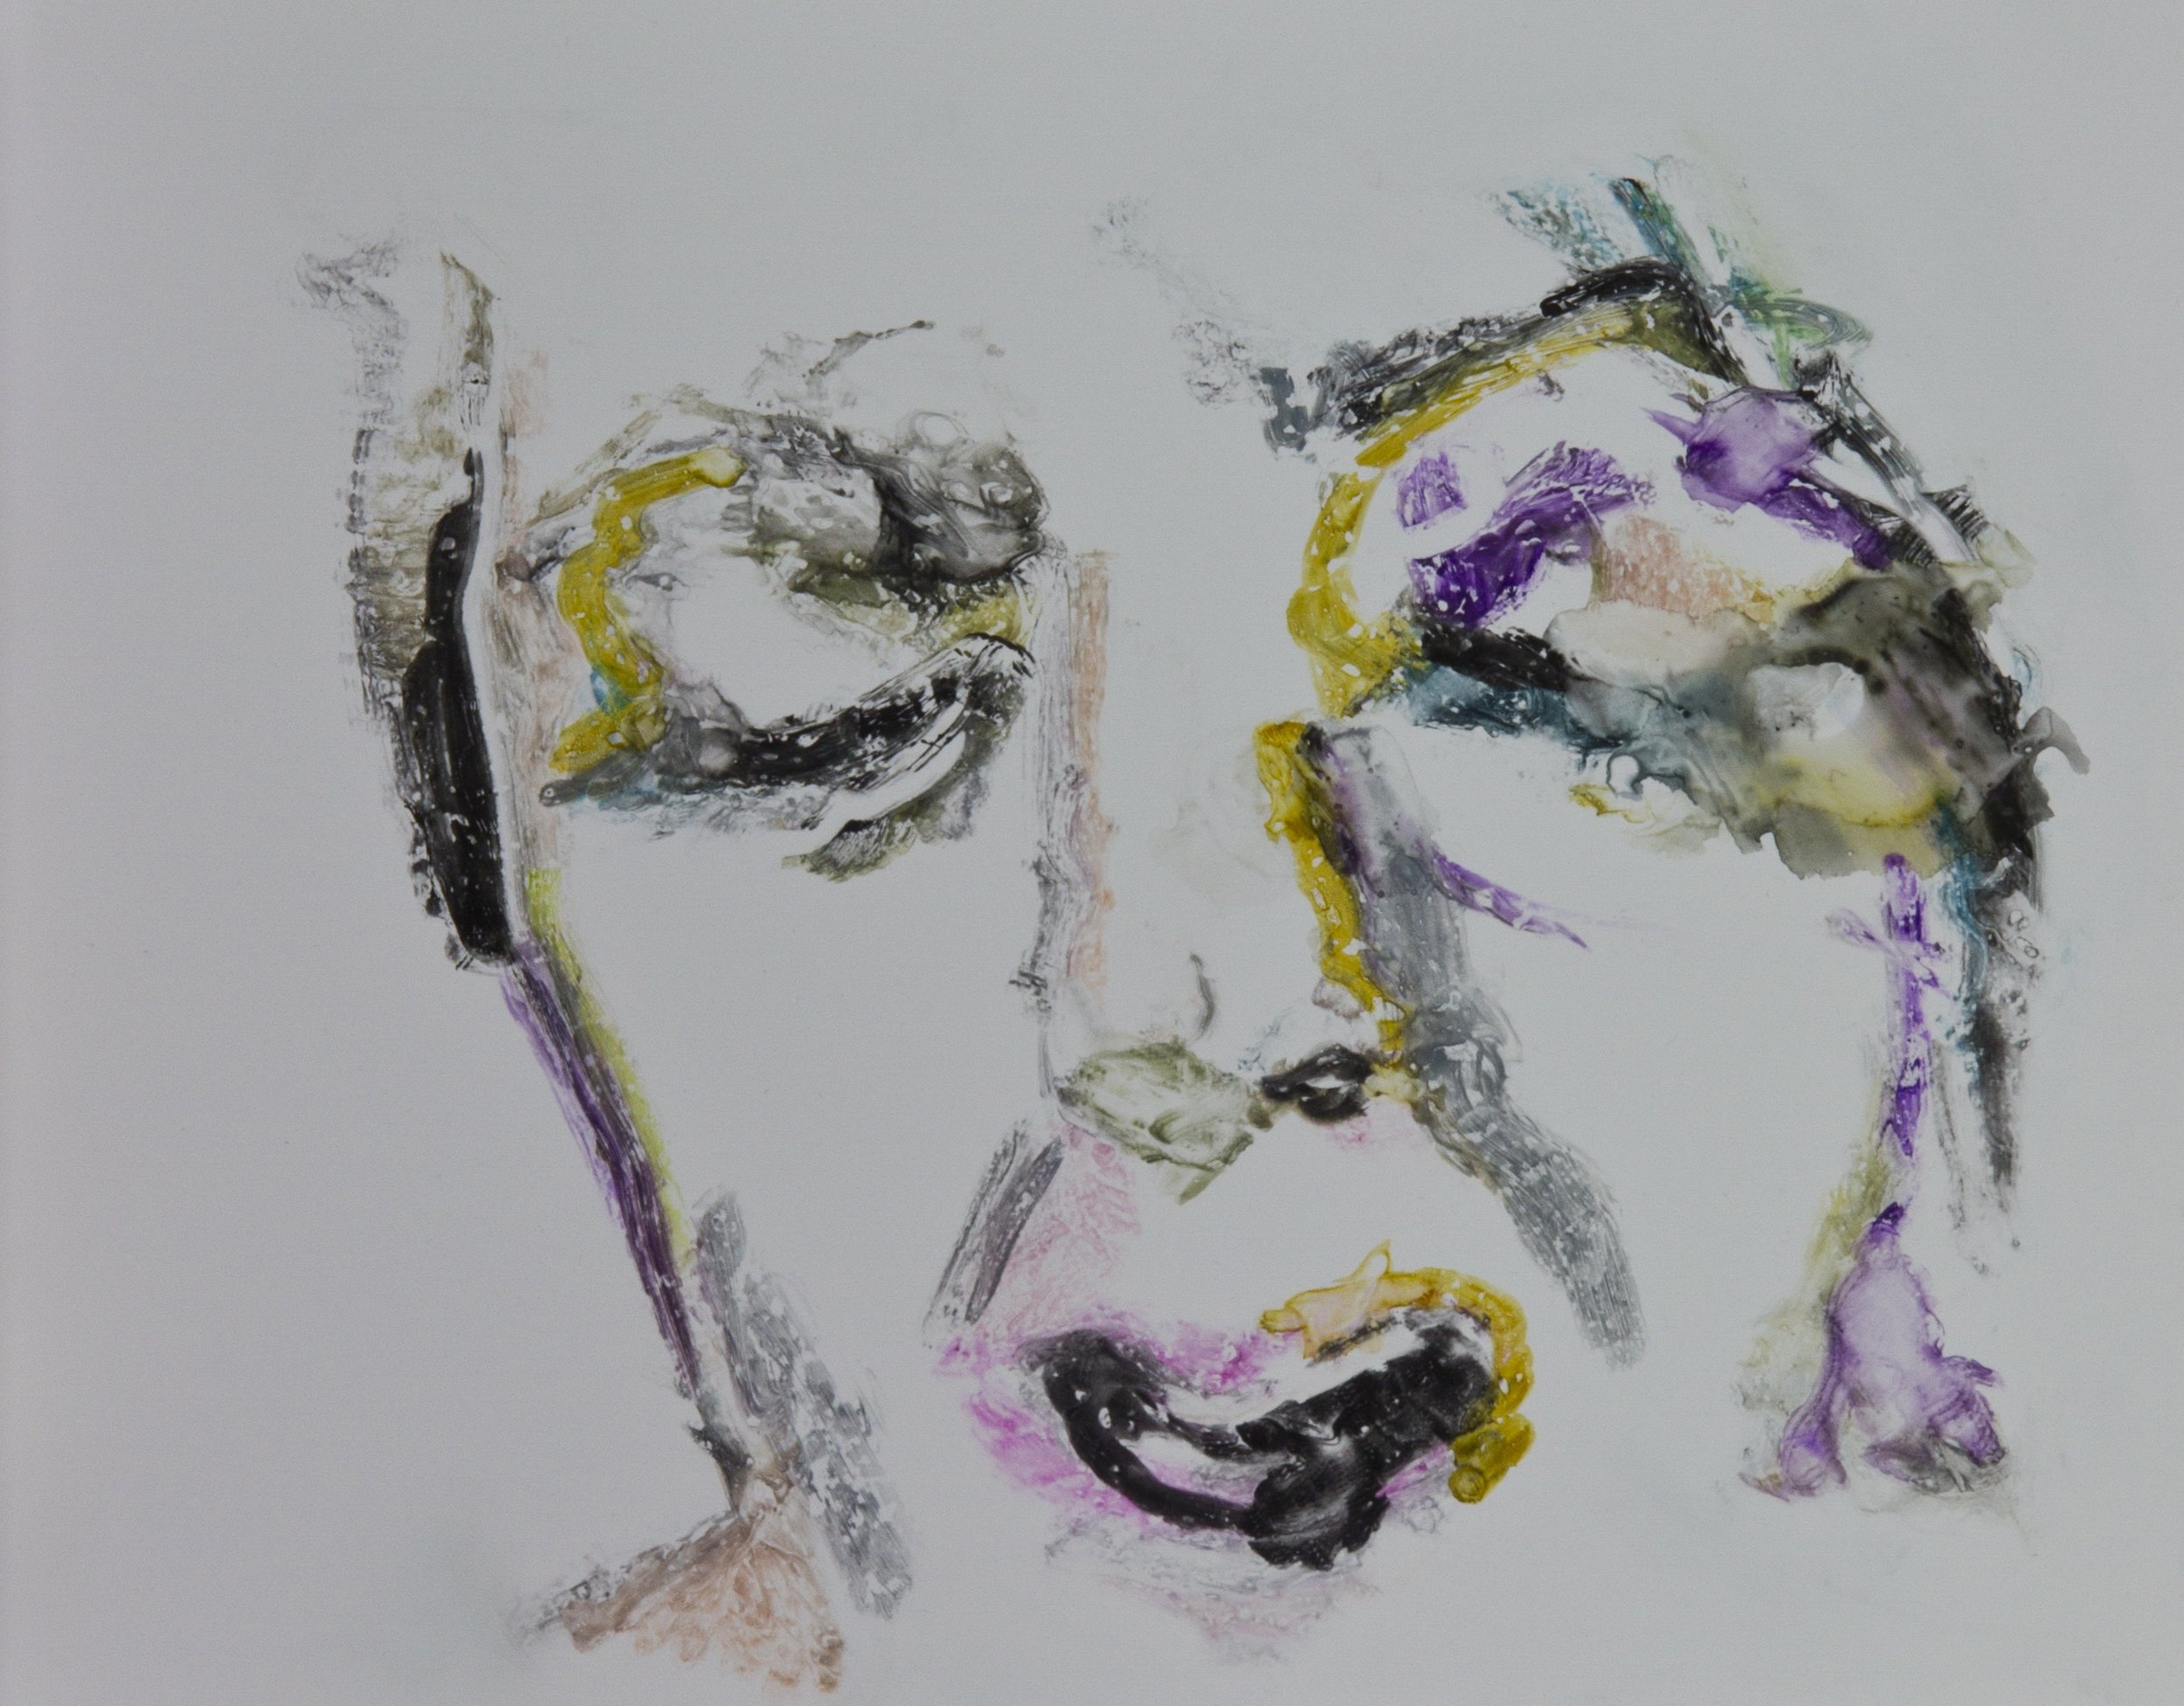 Acts 20, 2010, watercolor monotype on polypropylene, 11x14 inches